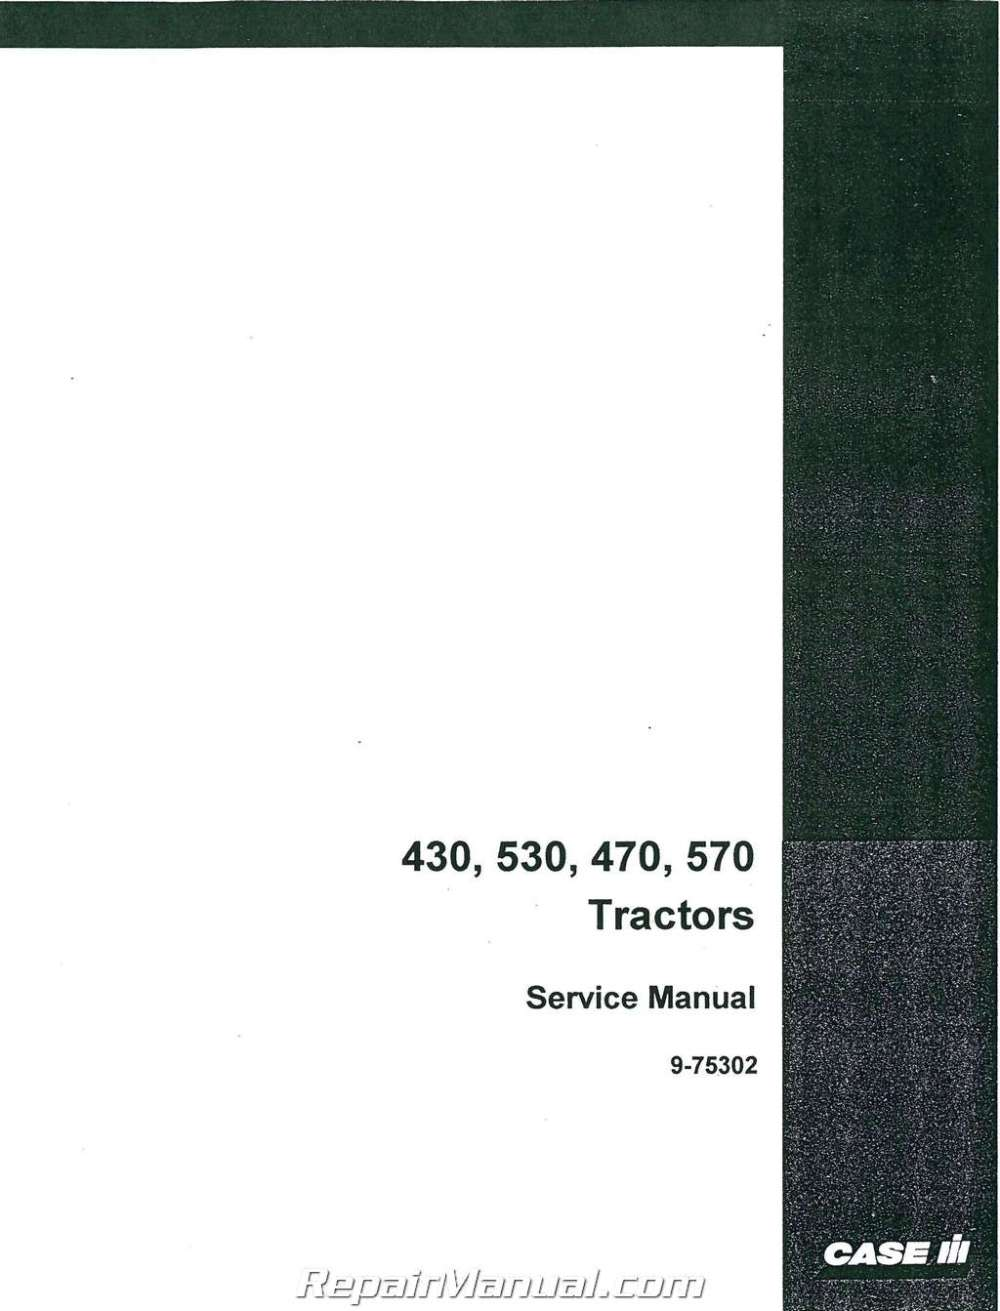 medium resolution of case ih u 95 105 115 service manual farmall pdf scribd online preview it covers 540 630 specific scribd is world s largest social reading publishing